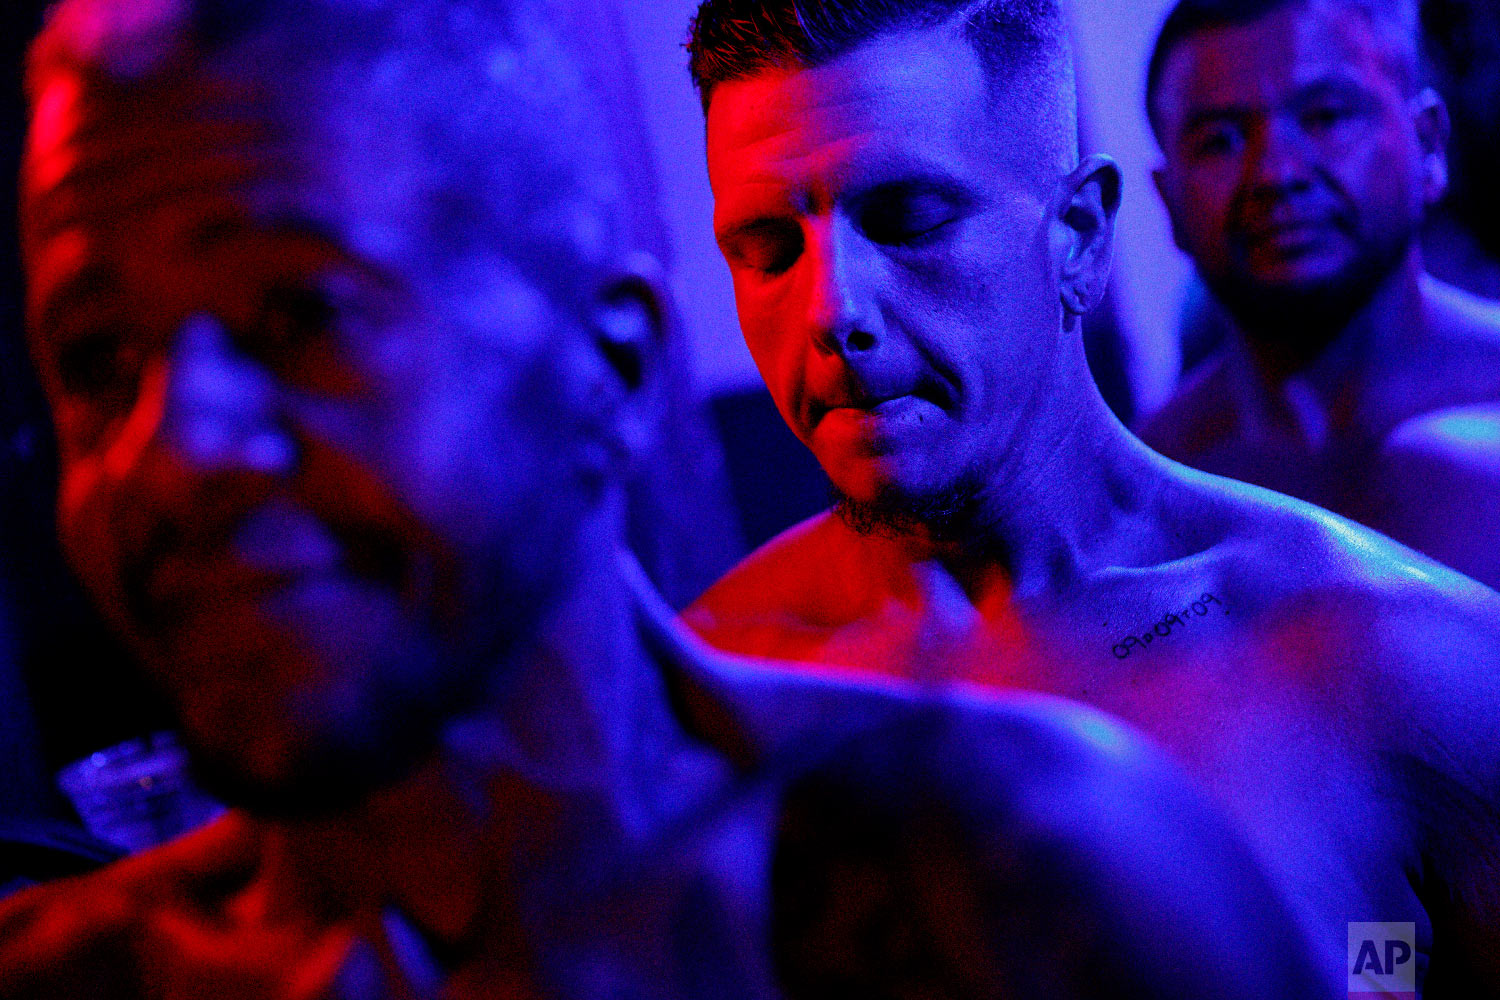 Devyn Michael Clark, of Jacksonville, Fla., center, closes his eyes for a moment backstage before the start of the International Association of Trans Bodybuilders competition in Atlanta, Oct. 6, 2018. (AP Photo/David Goldman)